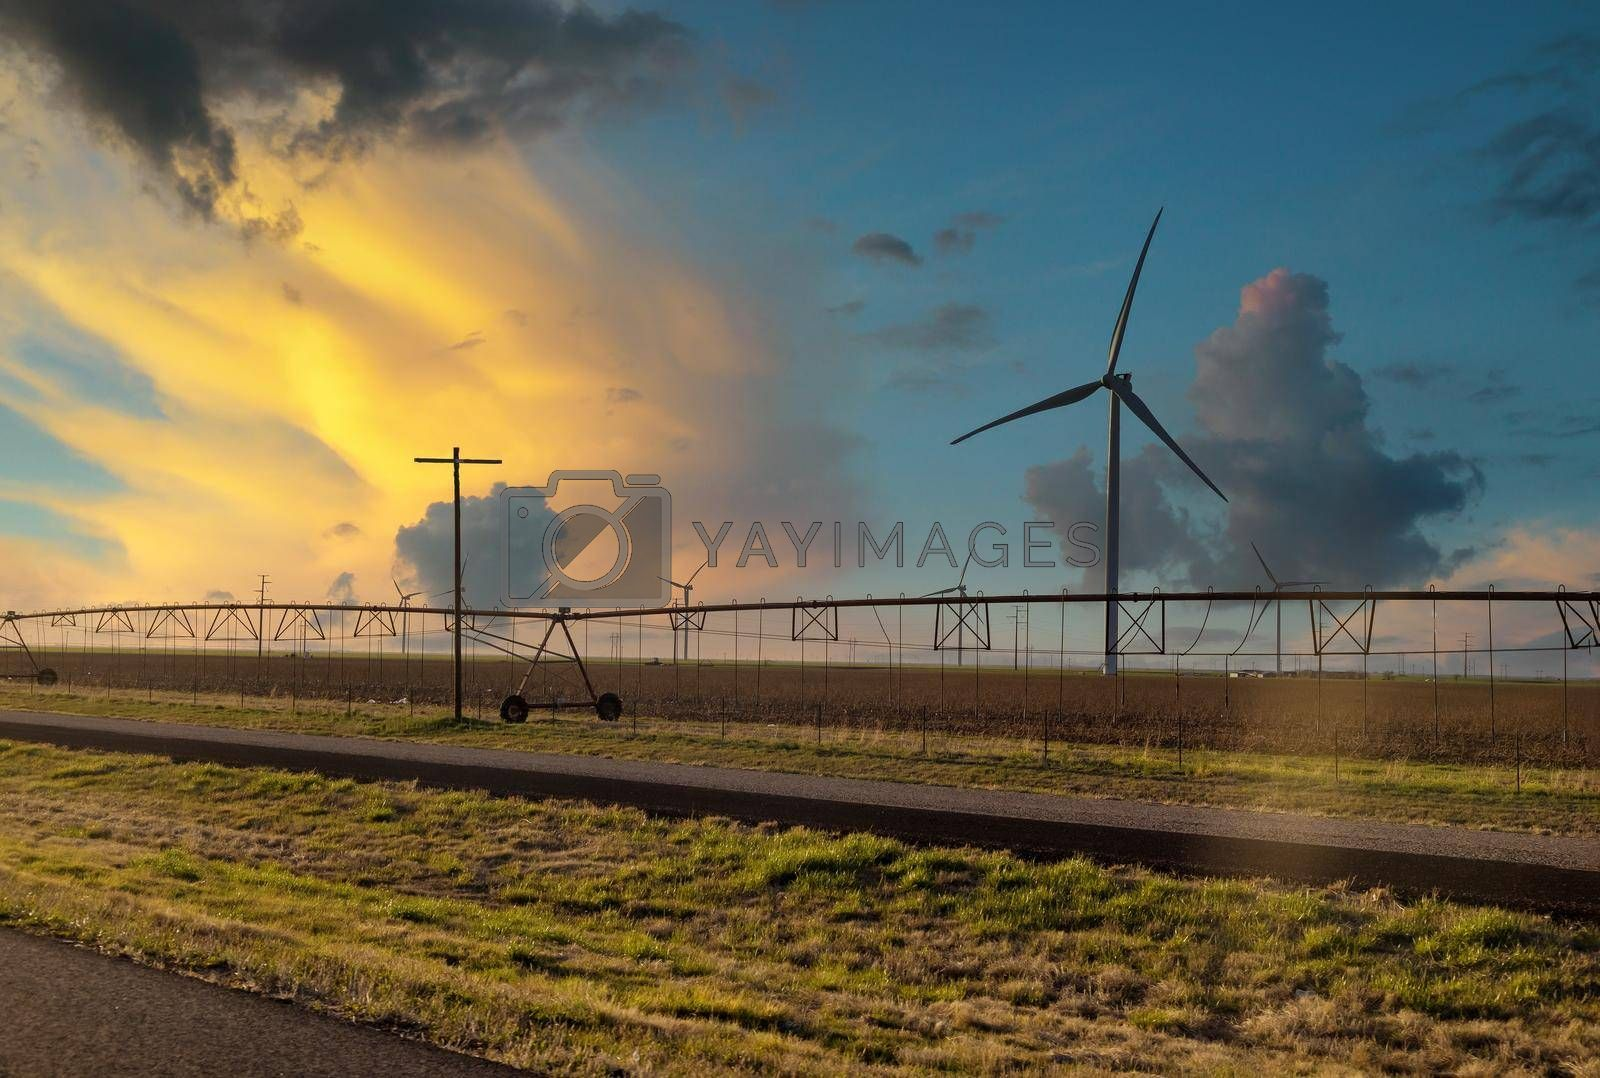 Water sprinkler system in a green field at sunset with wind turbines windmill energy farm in Texas US